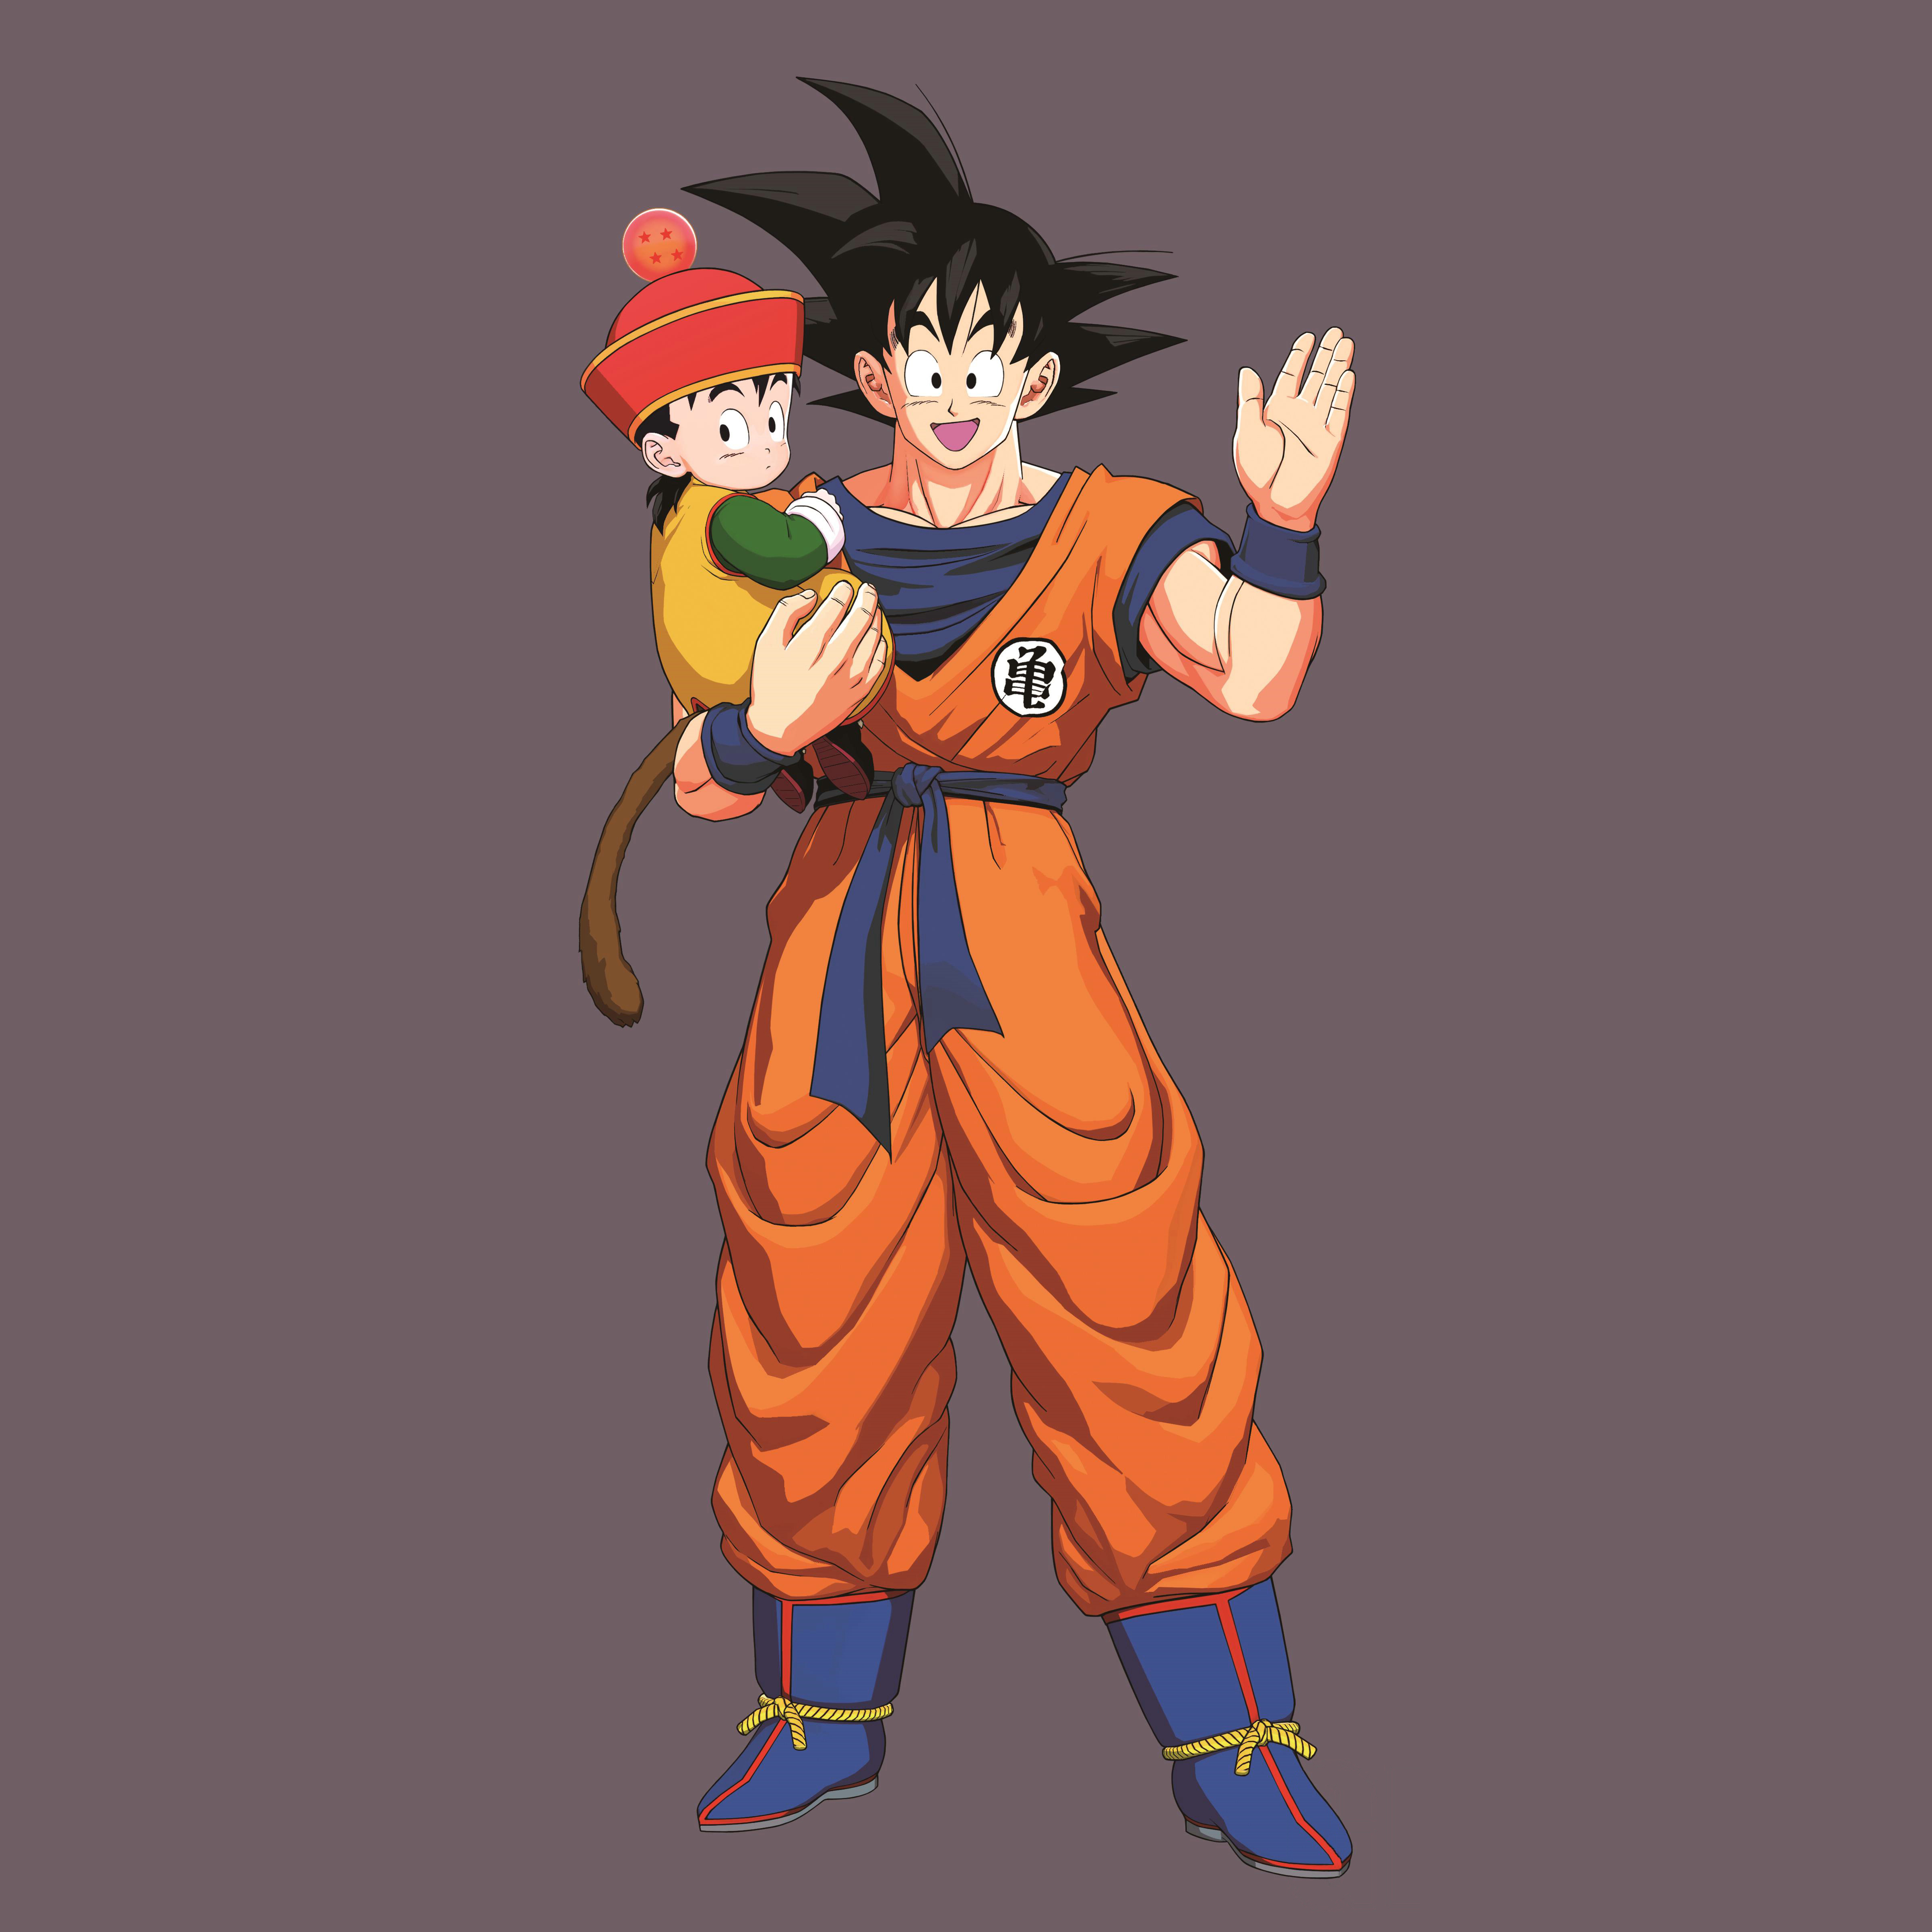 Dragon Ball Z Kakarot Game Wallpaper, HD Games 4K ...